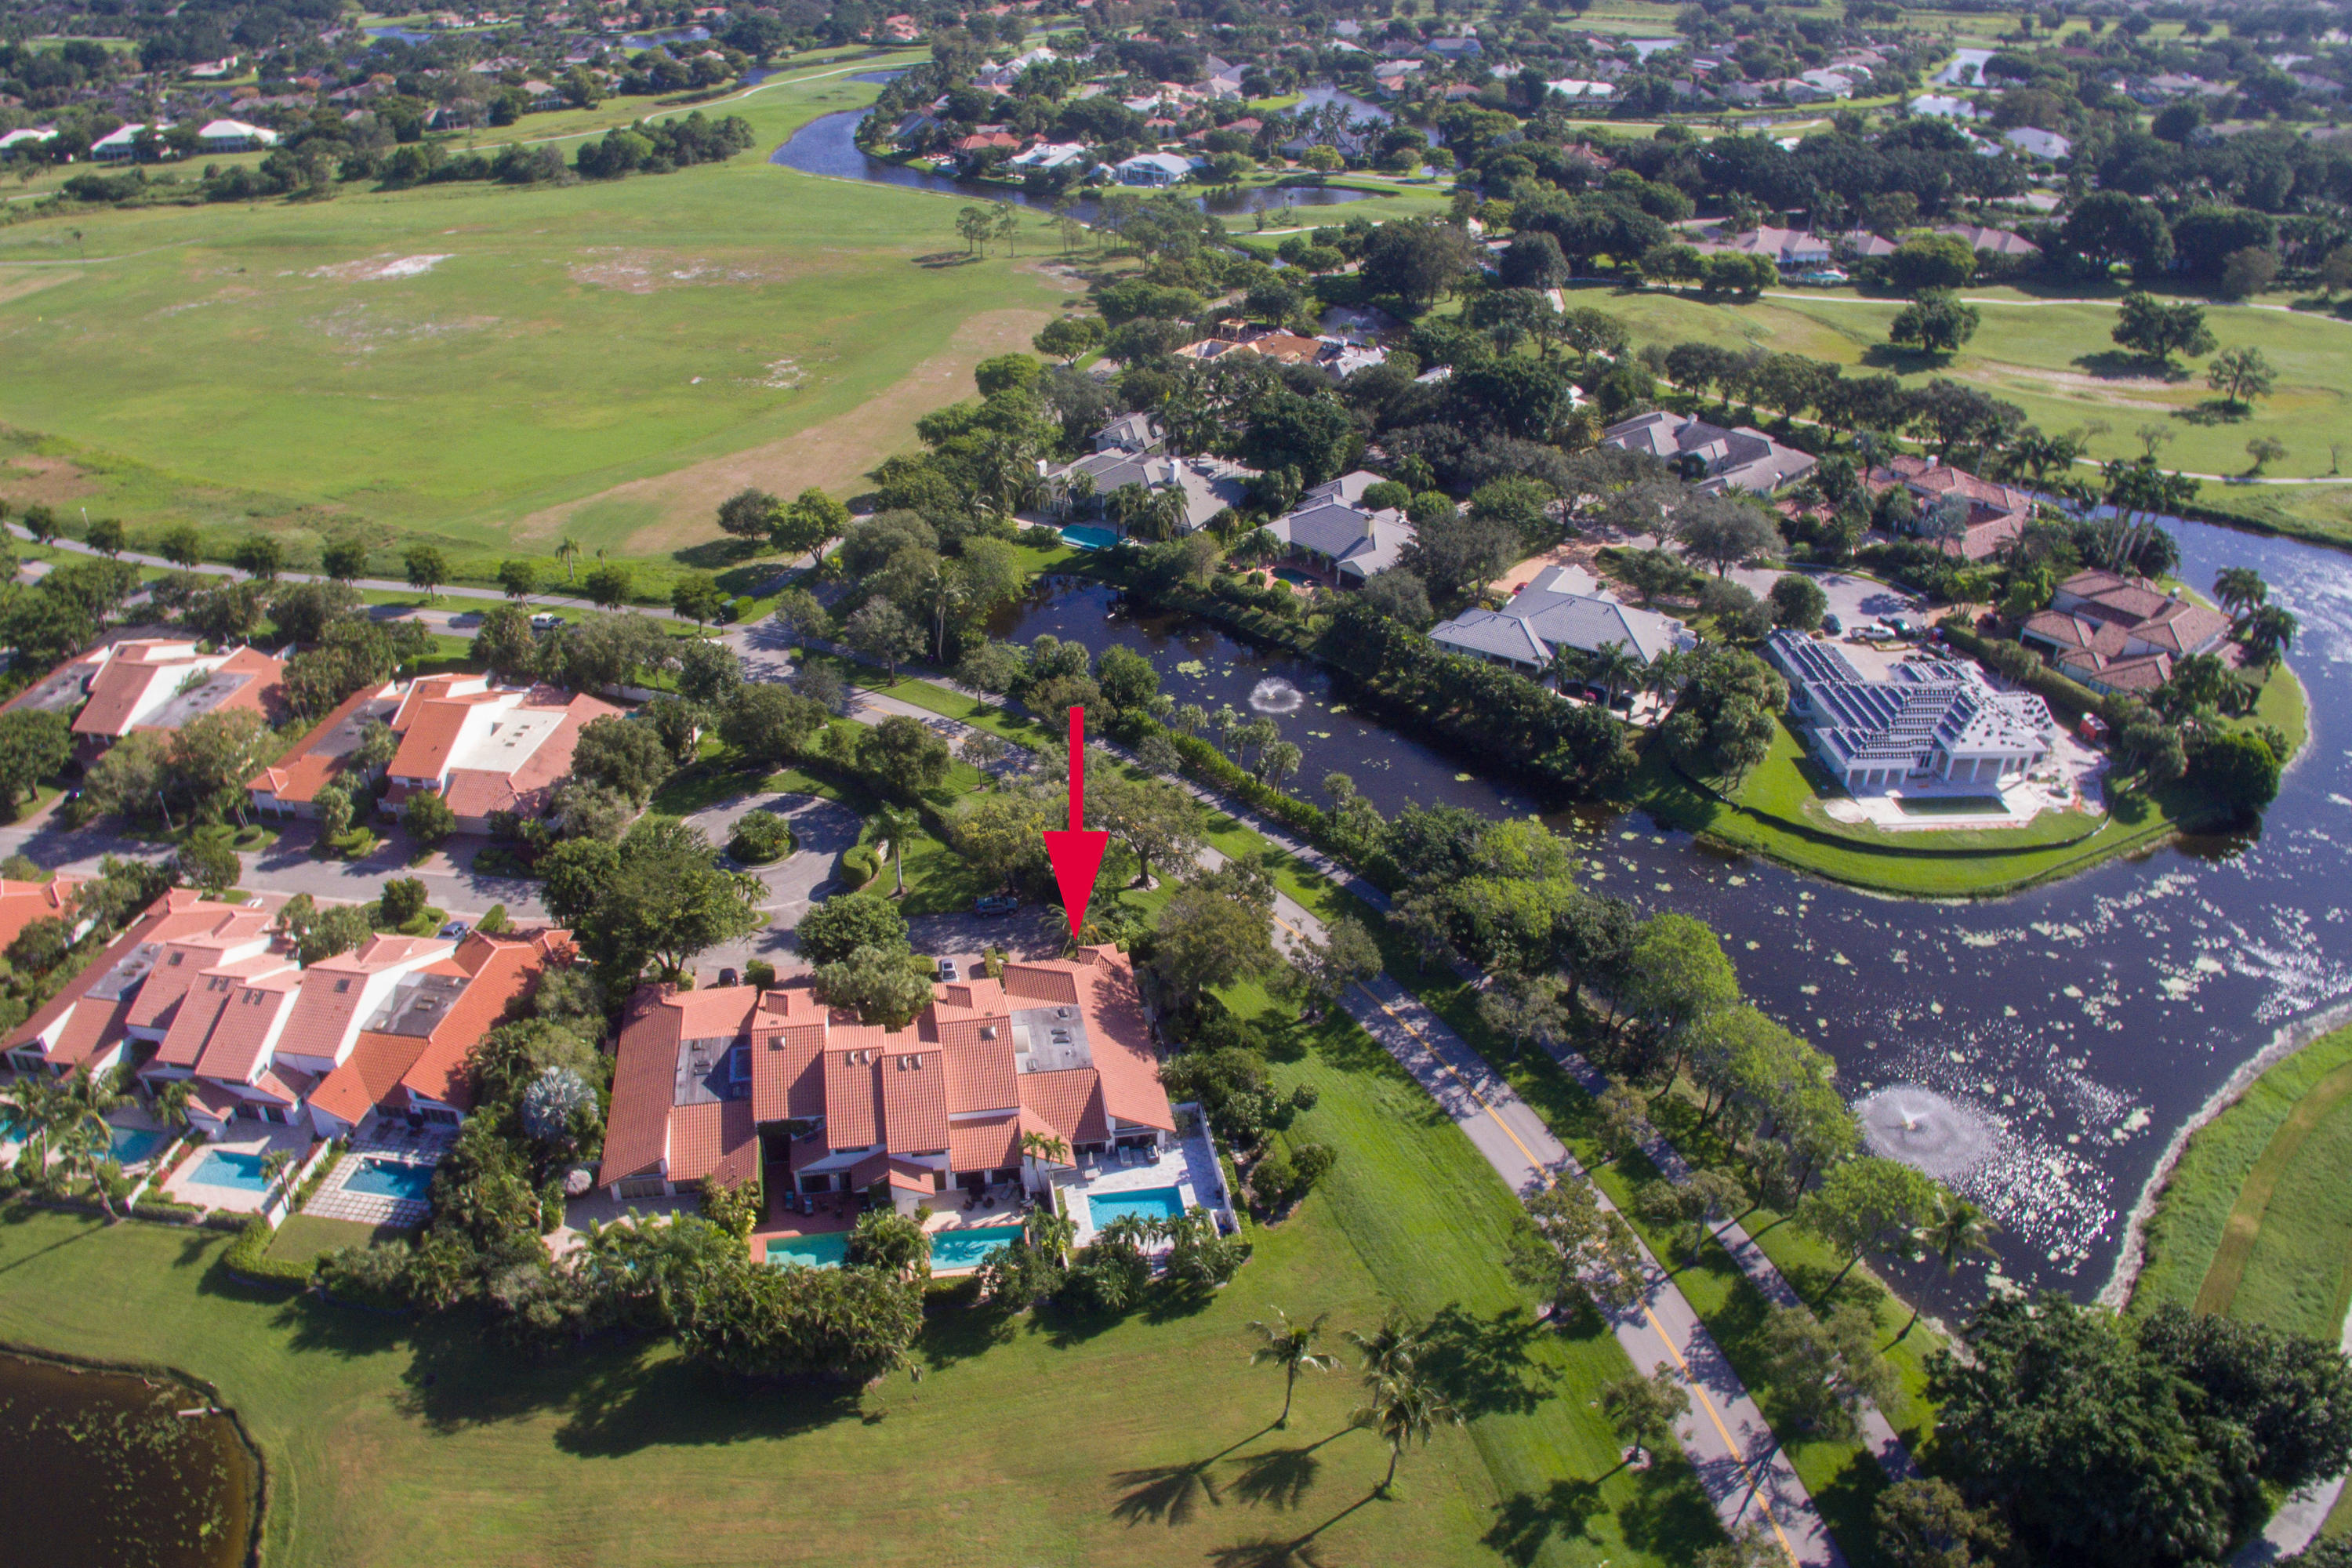 2579 Windsor Way Court, Wellington, Florida 33414, 3 Bedrooms Bedrooms, ,3 BathroomsBathrooms,Townhouse,For Sale,PALM BEACH POLO,Windsor Way,1,RX-10667613